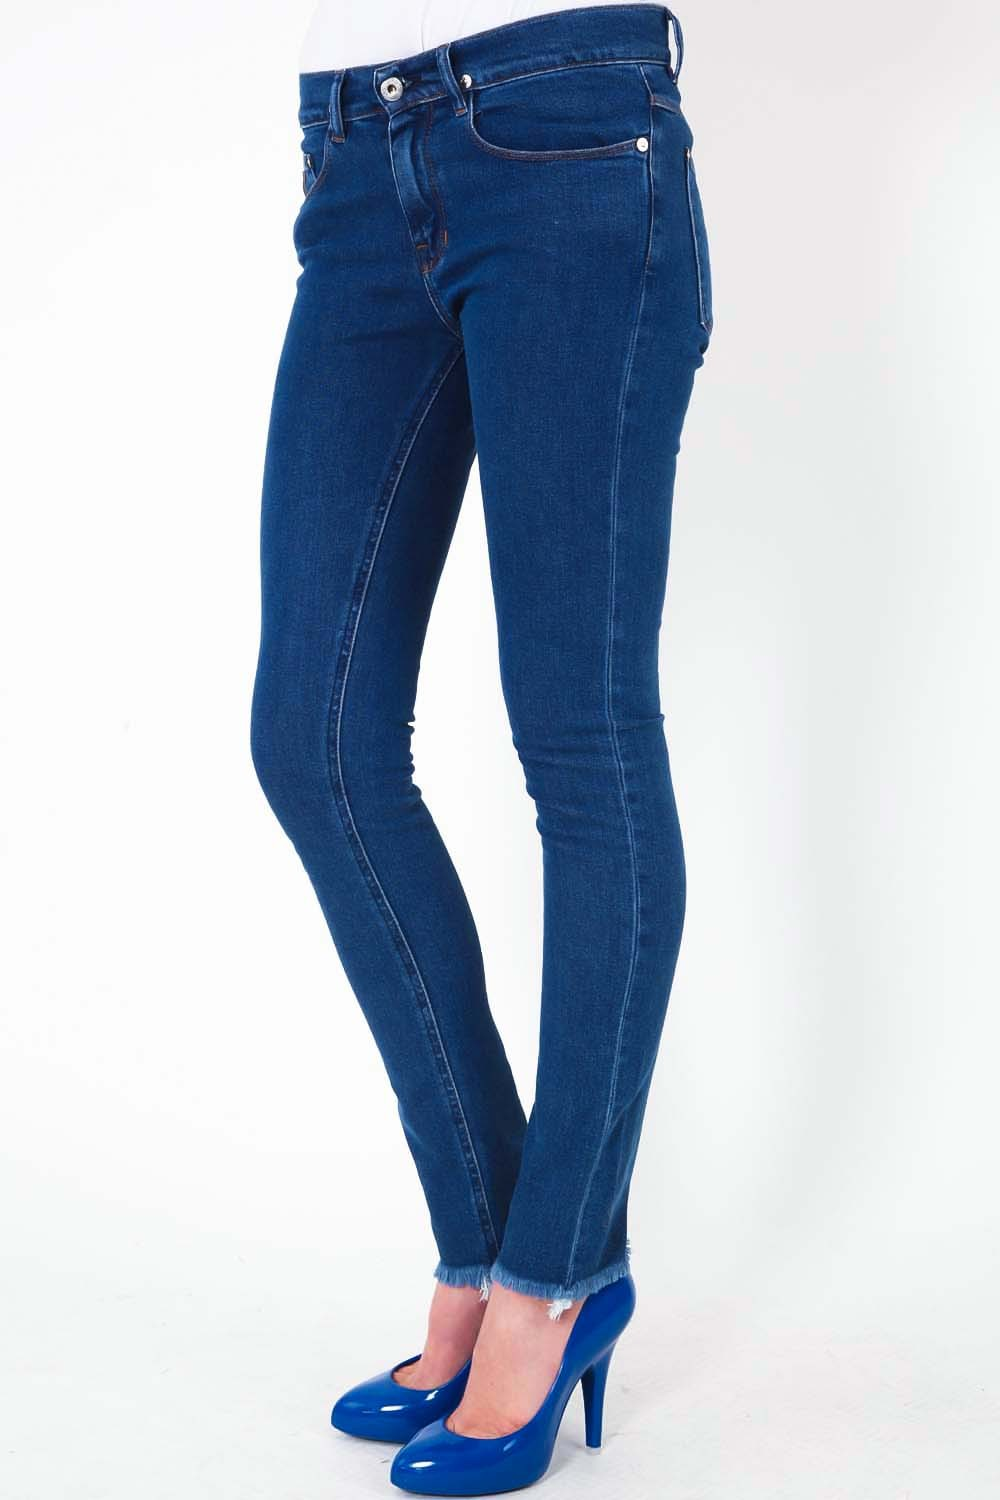 JEANS JOEY LADY APRIL 77 BLEU